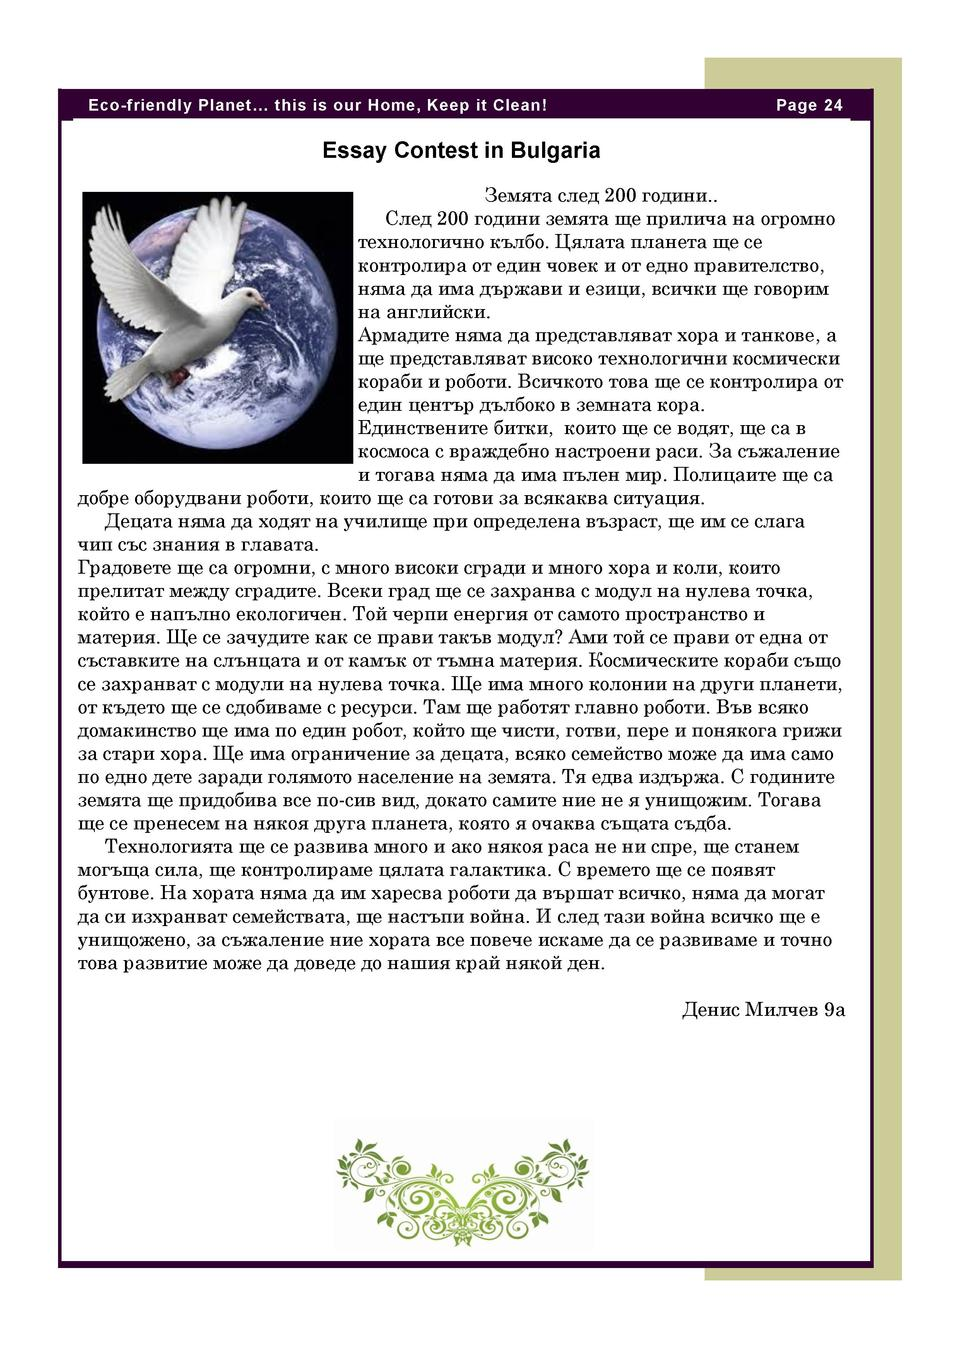 eco friendly planet com eco friendly planet this is our home keep it clean page 24 essay contest